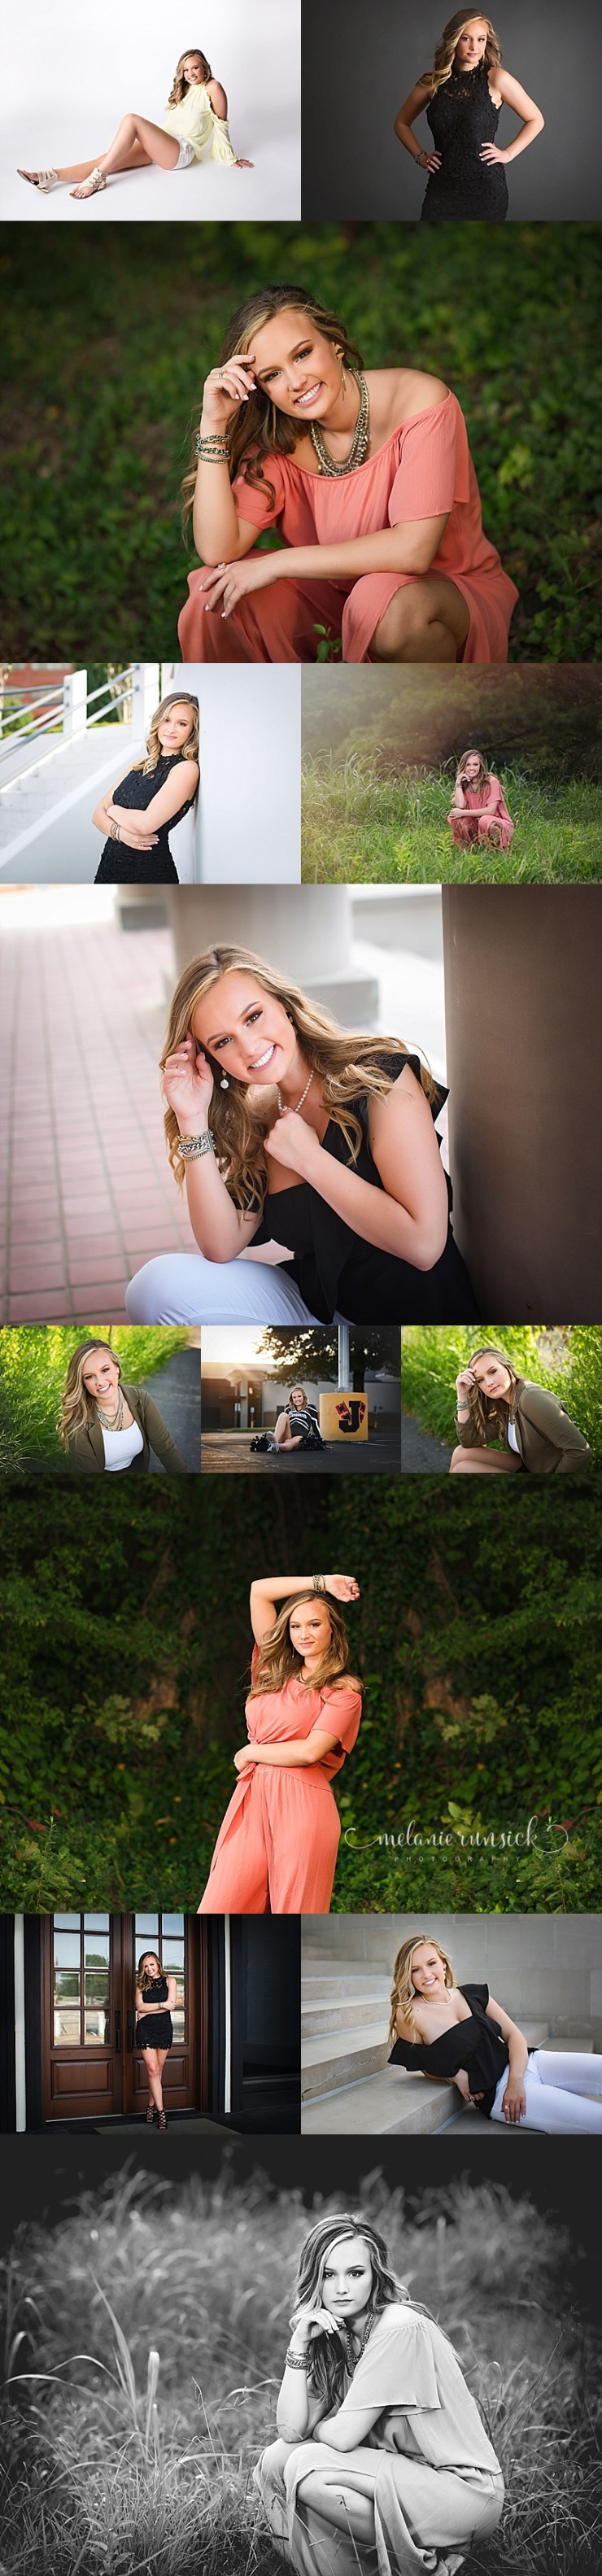 Jonesboro High School Senior Portrait Photographer Melanie Runsick Photography